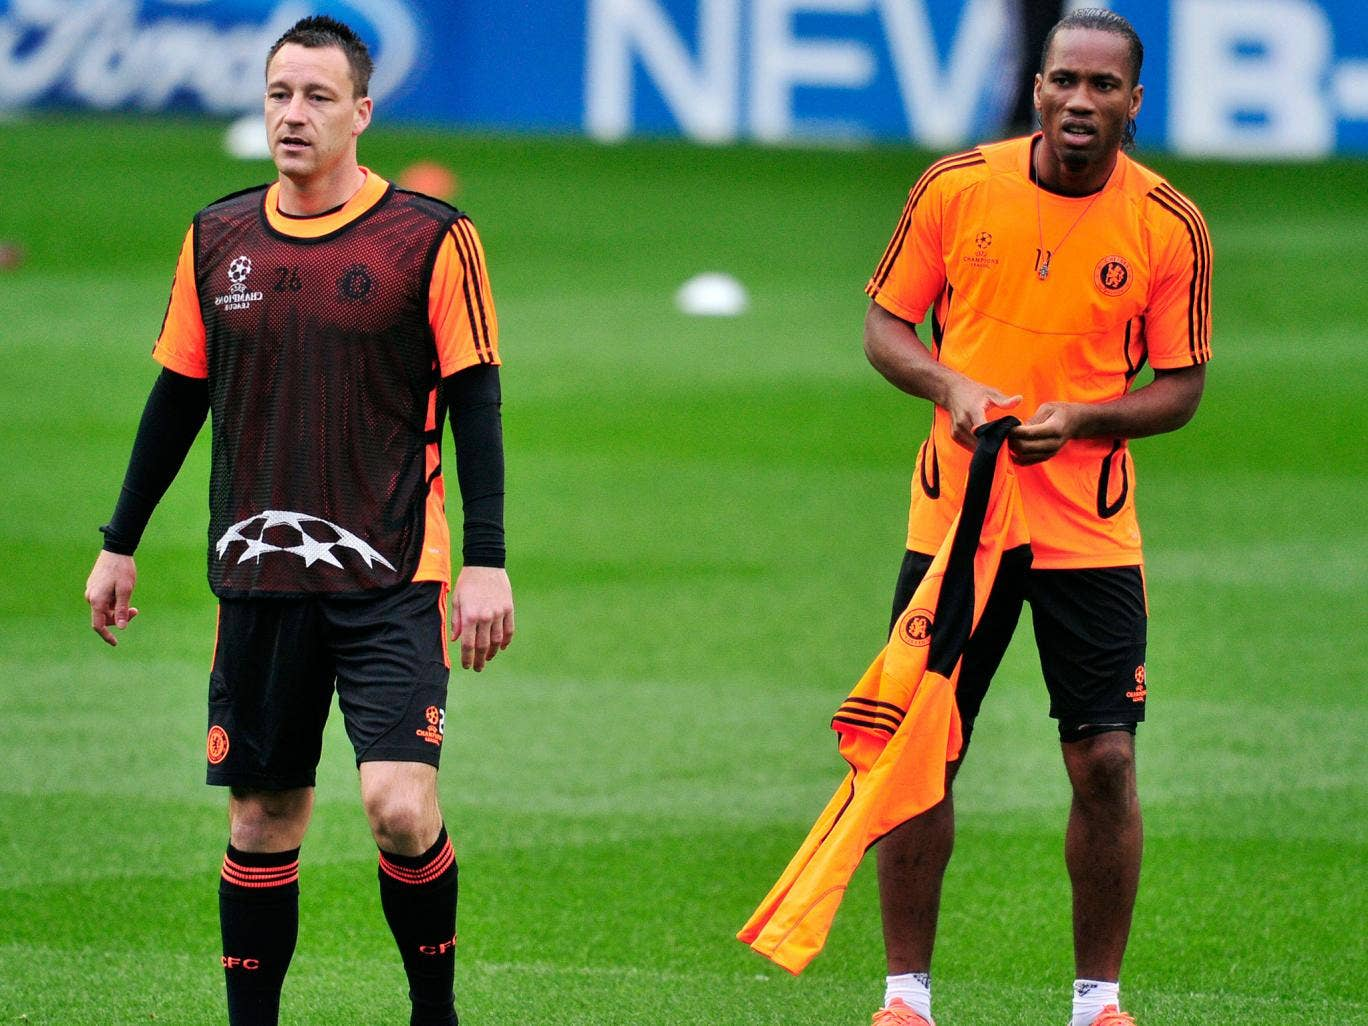 John Terry and Didier Drogba in training back in 2012